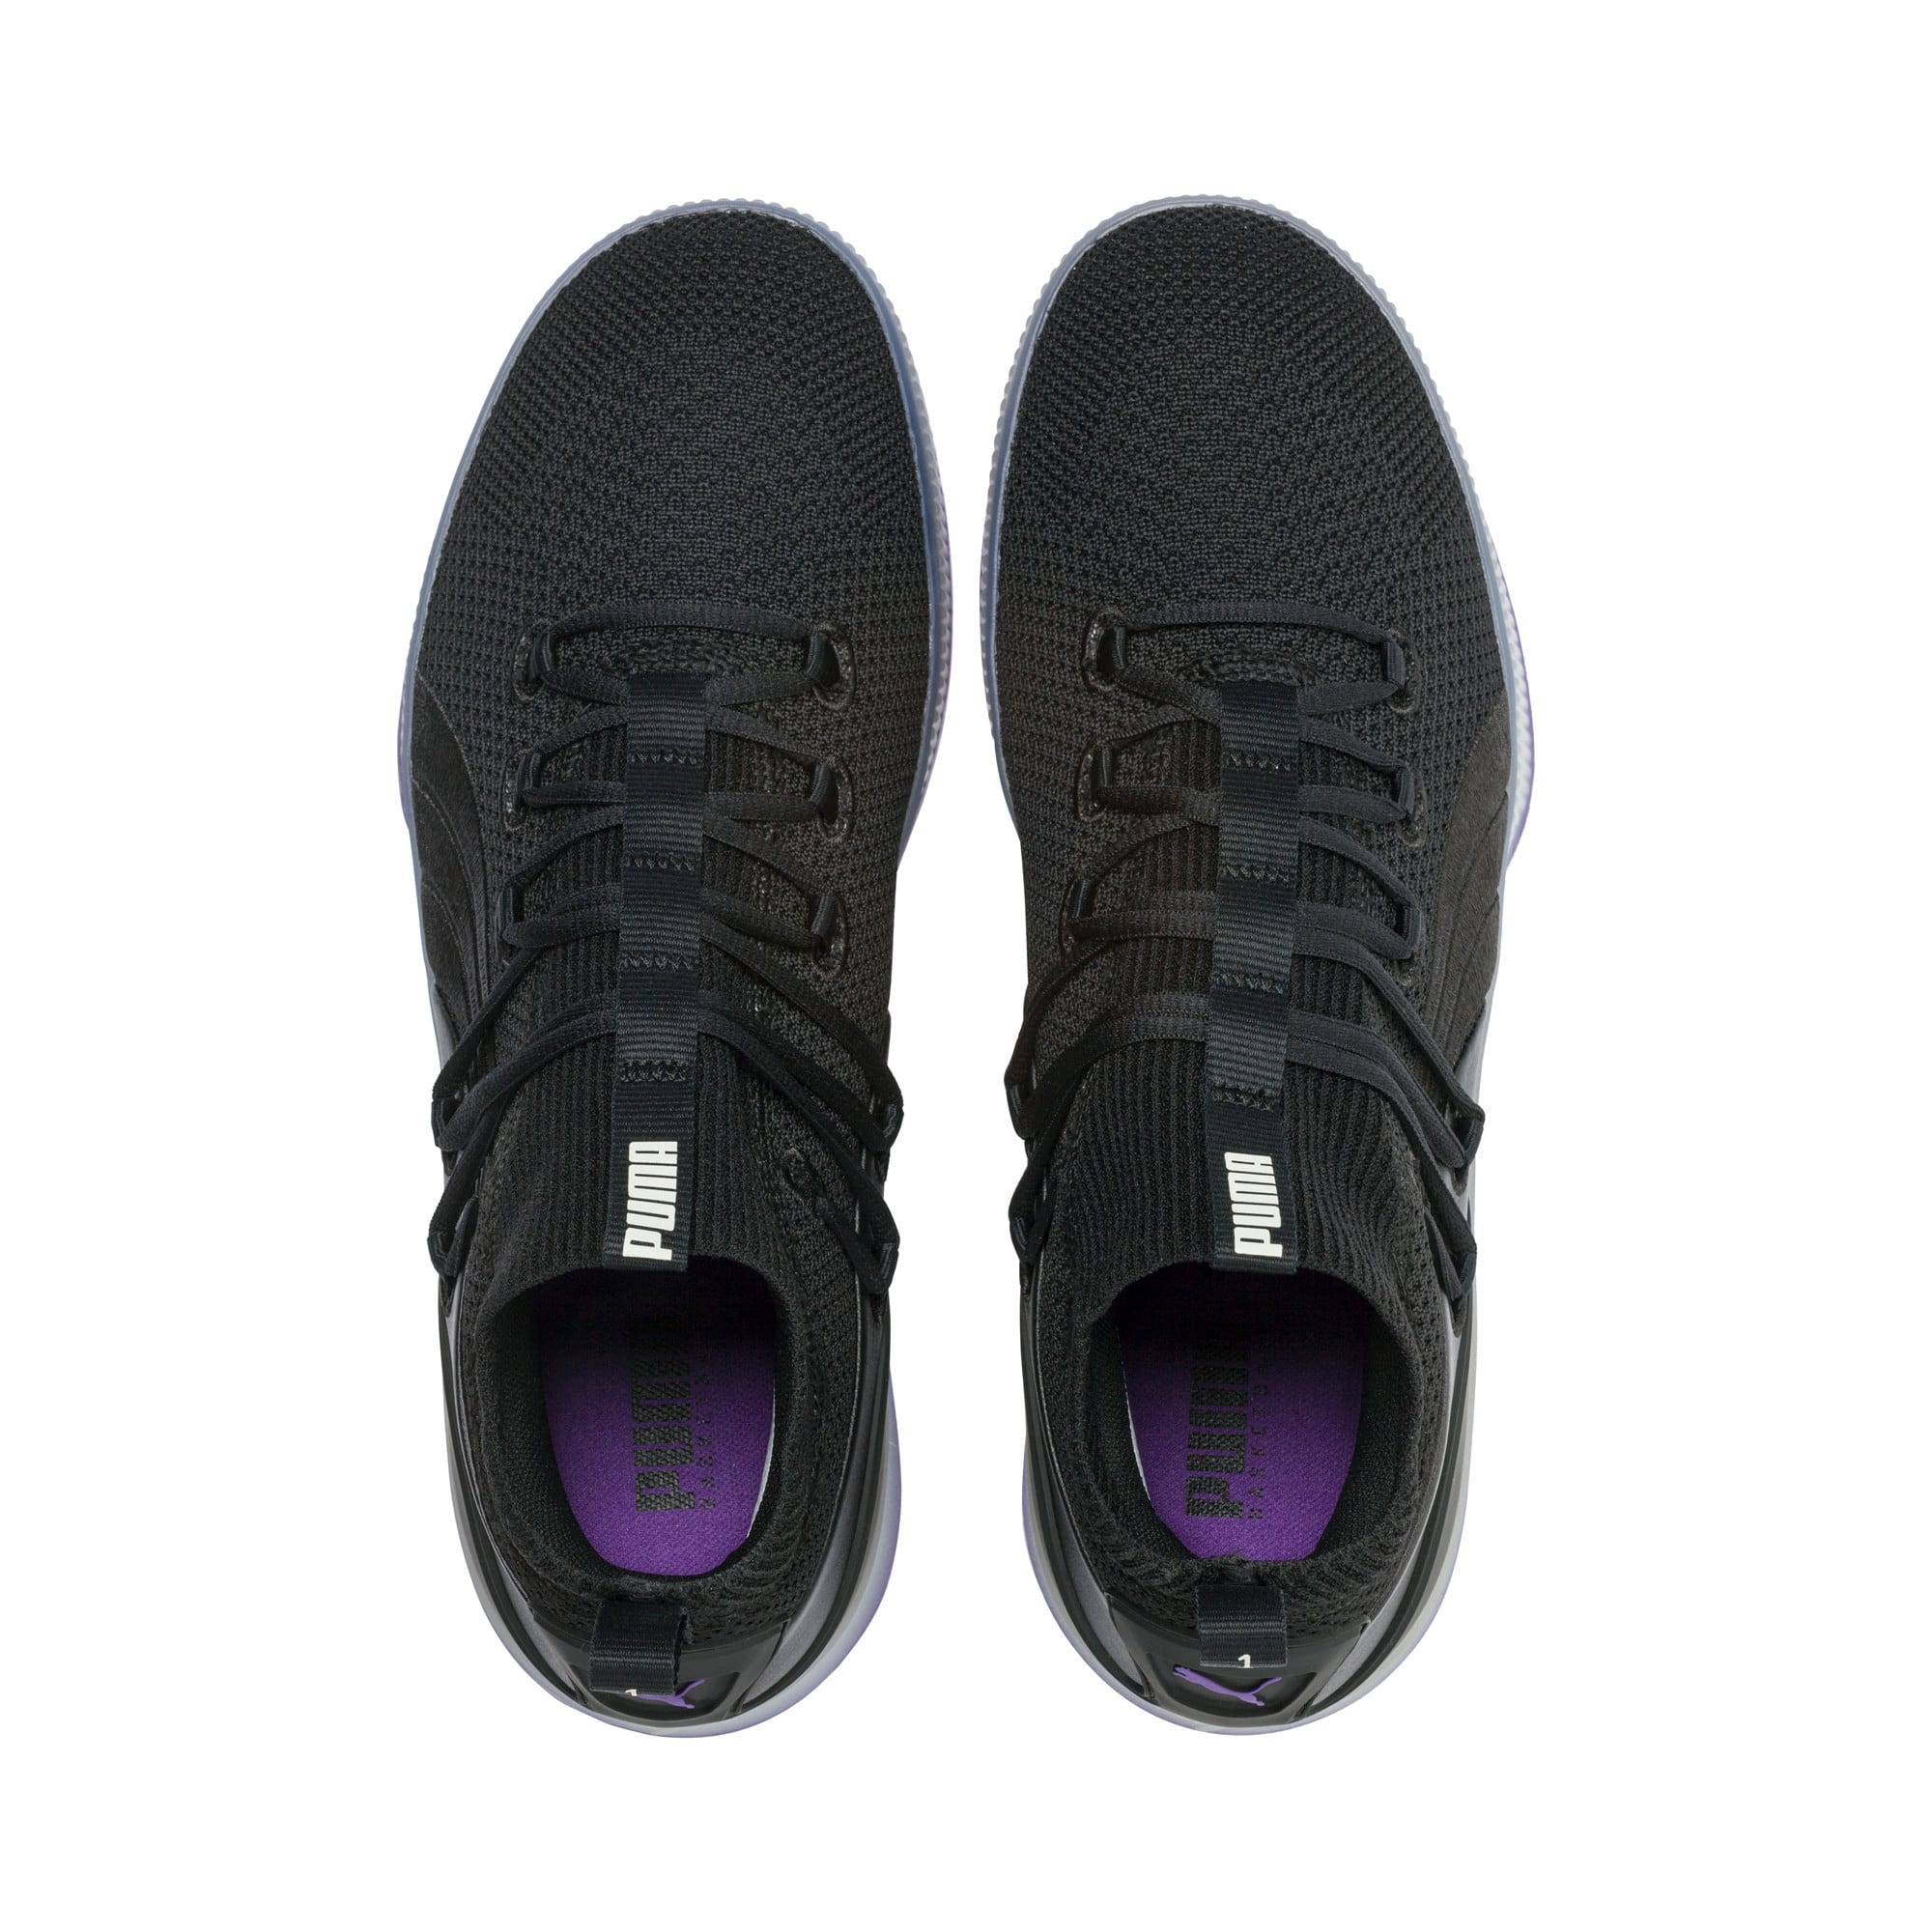 Thumbnail 6 of Clyde Court Disrupt Men's Basketball Shoes, Puma Black-ELECTRIC PURPLE, medium